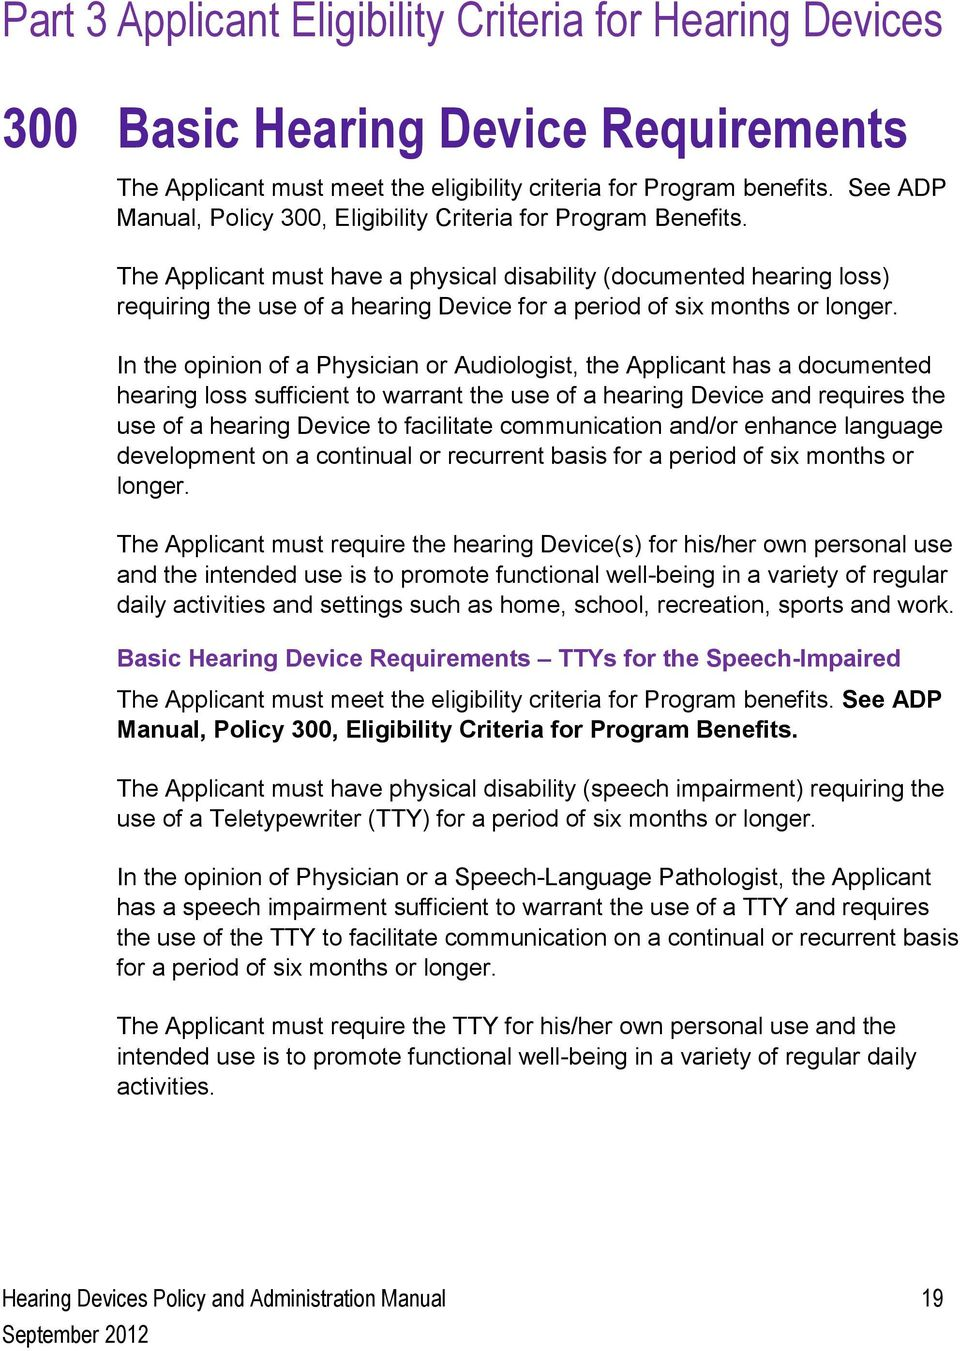 The Applicant must have a physical disability (documented hearing loss) requiring the use of a hearing Device for a period of six months or longer.